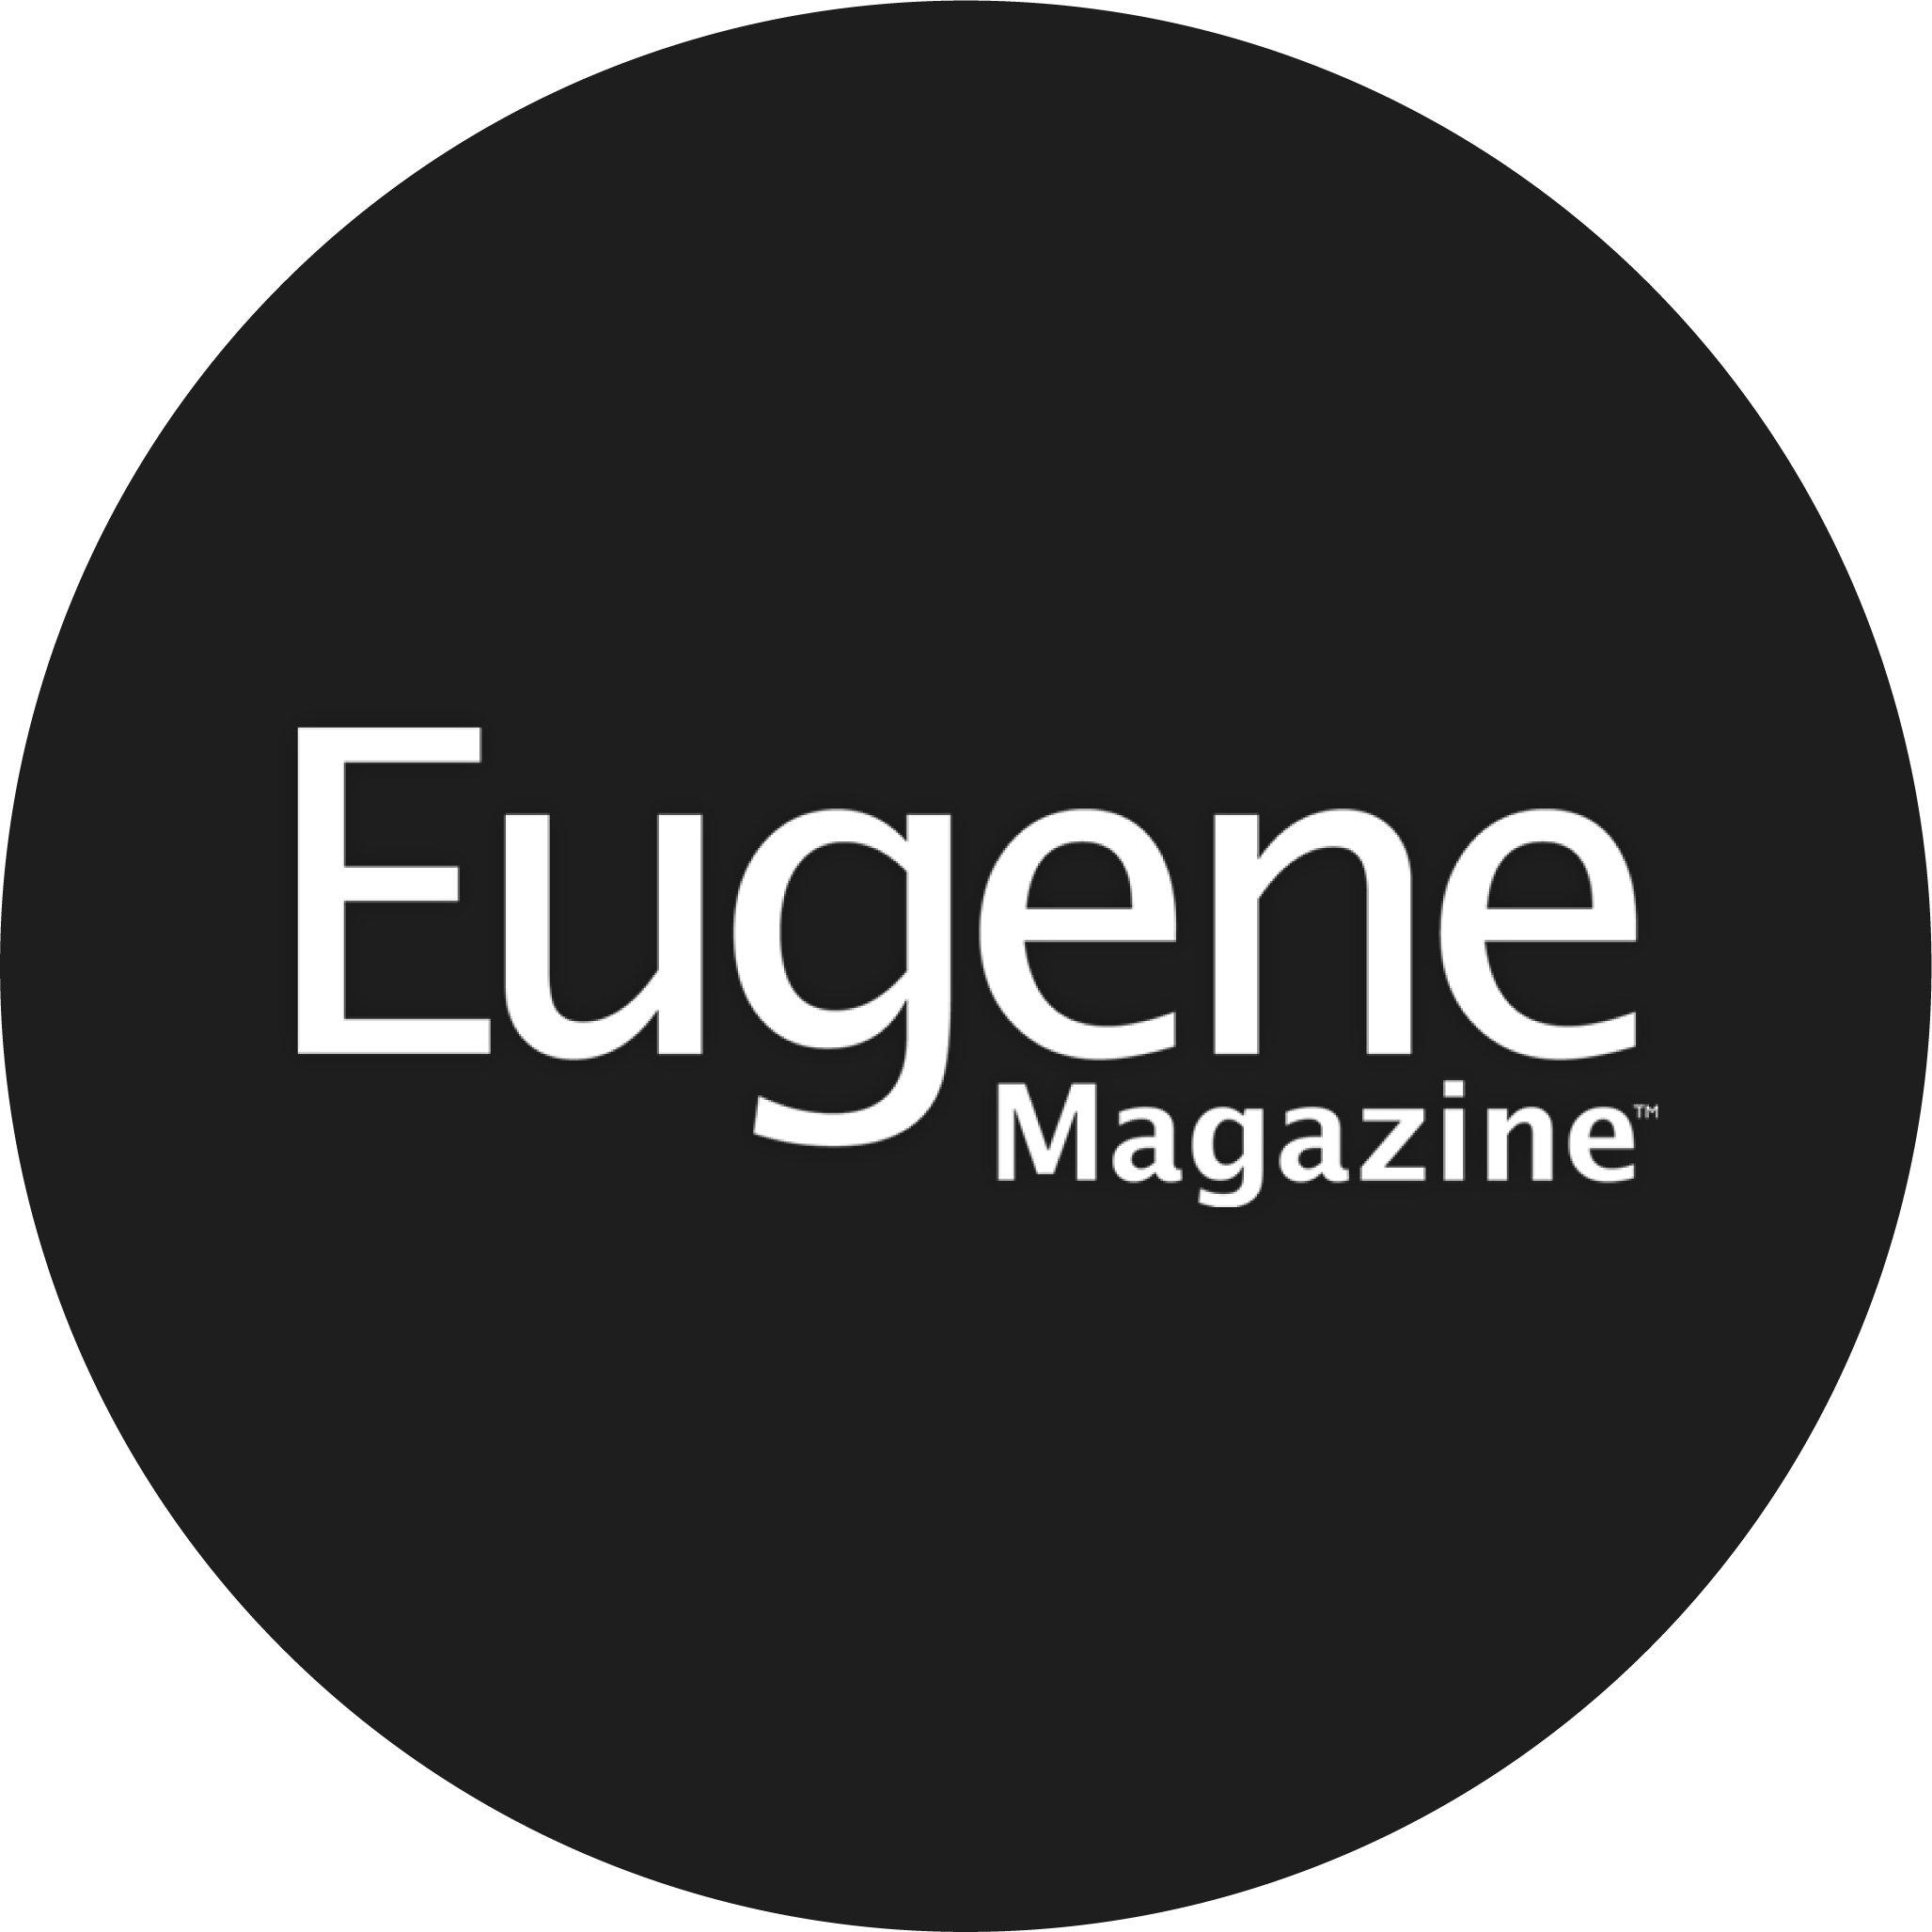 https://i0.wp.com/eventcrush.com/wp-content/uploads/2019/04/Eugene-Mag-07.jpg?ssl=1